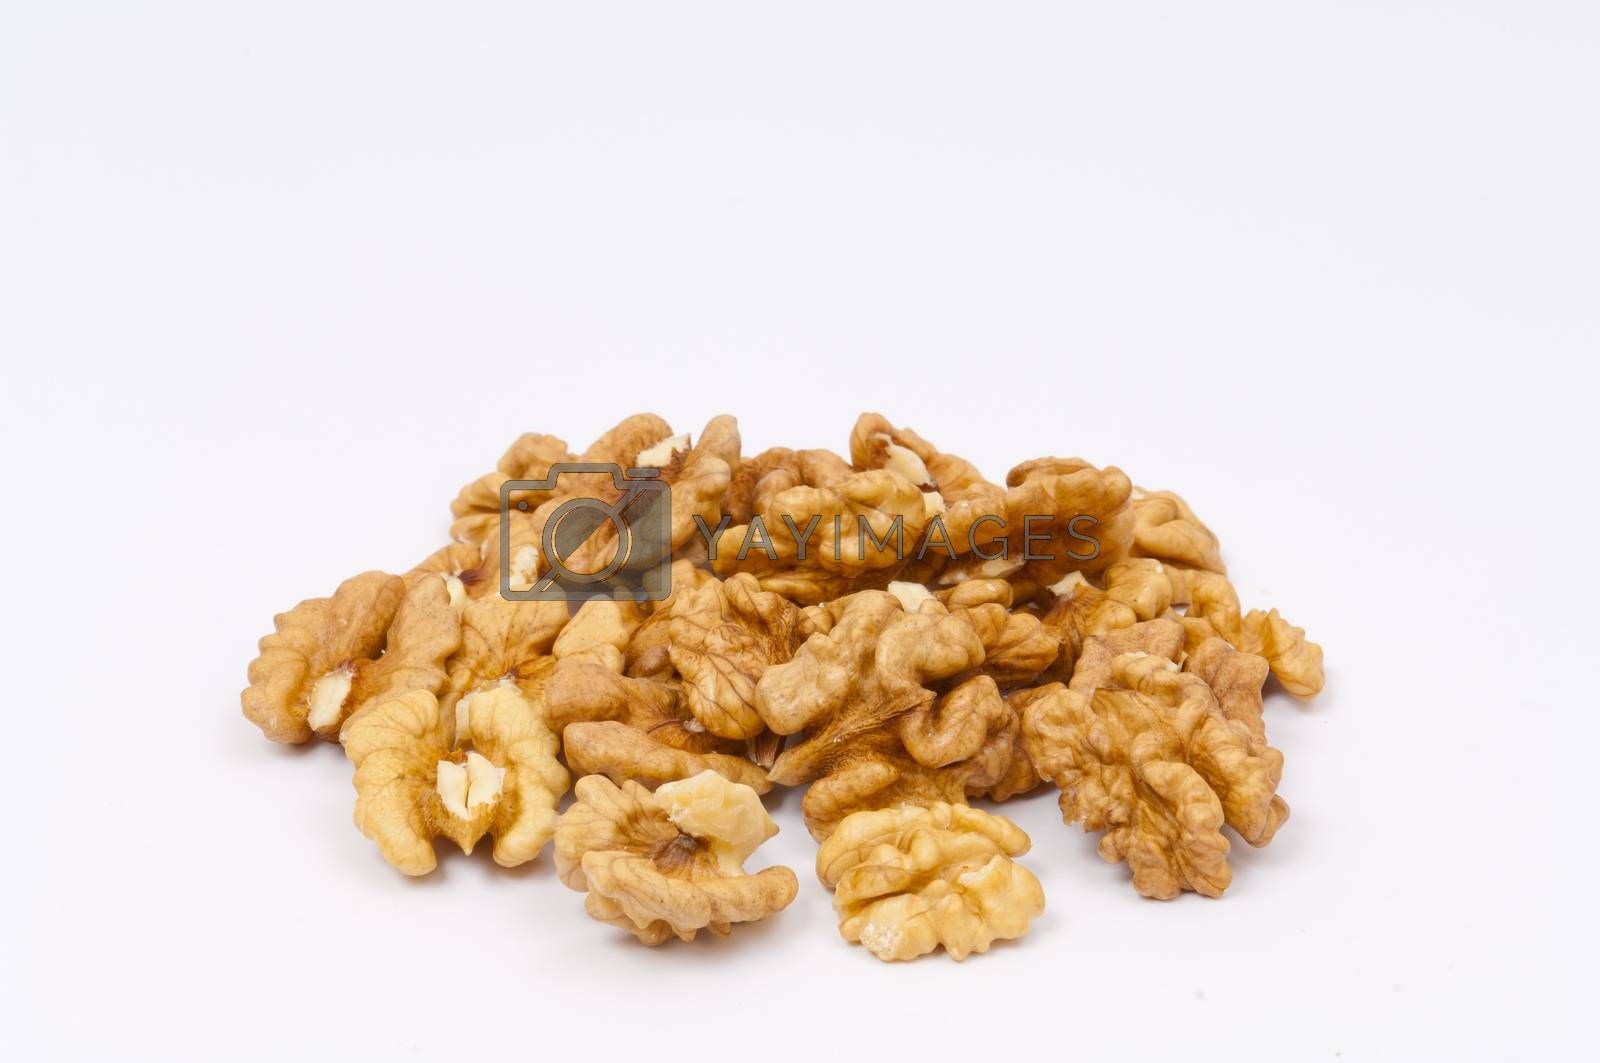 Pile of walnuts on white background by horizonphoto